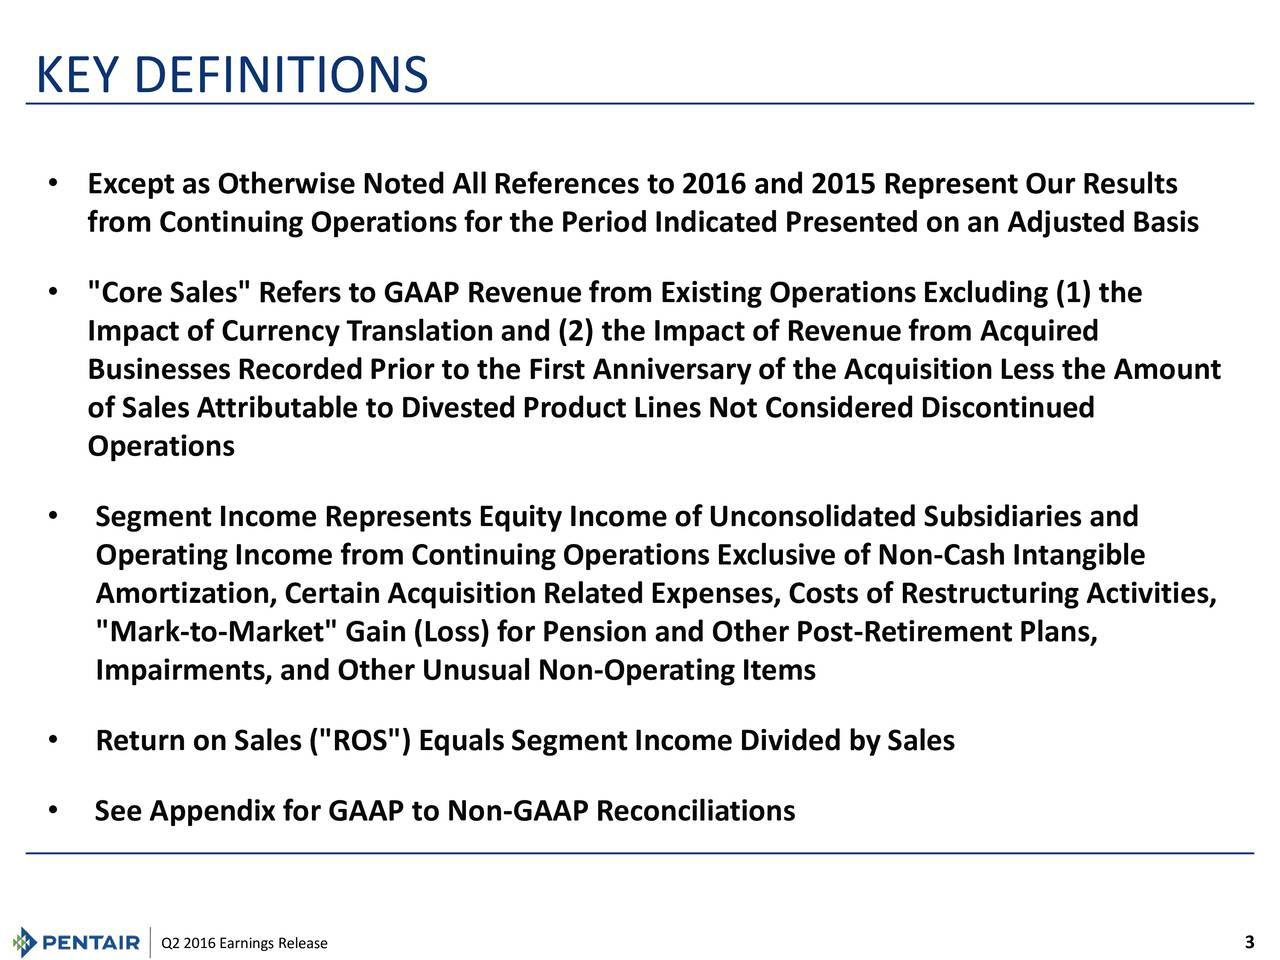 "Except as Otherwise Noted All References to 2016 and 2015 Represent Our Results from Continuing Operations for the Period Indicated Presented on an Adjusted Basis ""Core Sales"" Refers to GAAP Revenue from Existing Operations Excluding (1) the Impact of Currency Translation and (2) the Impact of Revenue from Acquired Businesses Recorded Prior to the First Anniversary of the Acquisition Less the Amount of Sales Attributable to Divested Product Lines Not Considered Discontinued Operations Segment Income Represents Equity Income of Unconsolidated Subsidiaries and Operating Income from Continuing Operations Exclusive of Non-Cash Intangible Amortization, Certain Acquisition Related Expenses, Costs of Restructuring Activities, ""Mark-to-Market"" Gain (Loss) for Pension and Other Post-Retirement Plans, Impairments, and Other Unusual Non-Operating Items Return on Sales (""ROS"") Equals Segment Income Divided by Sales See Appendix for GAAP to Non-GAAP Reconciliations"